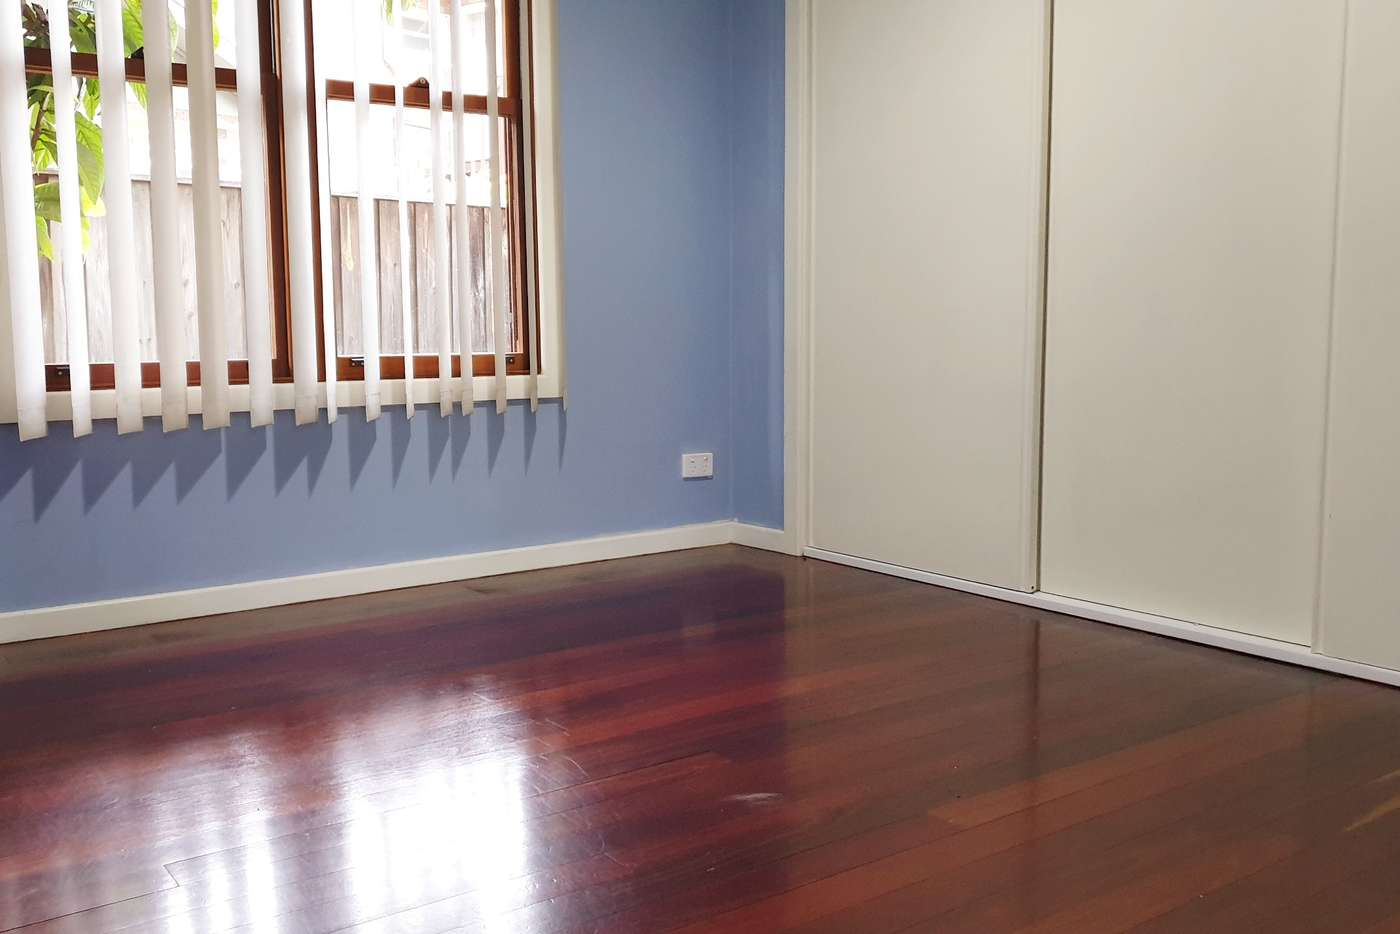 Sixth view of Homely house listing, 59a Ross St, North Parramatta NSW 2151